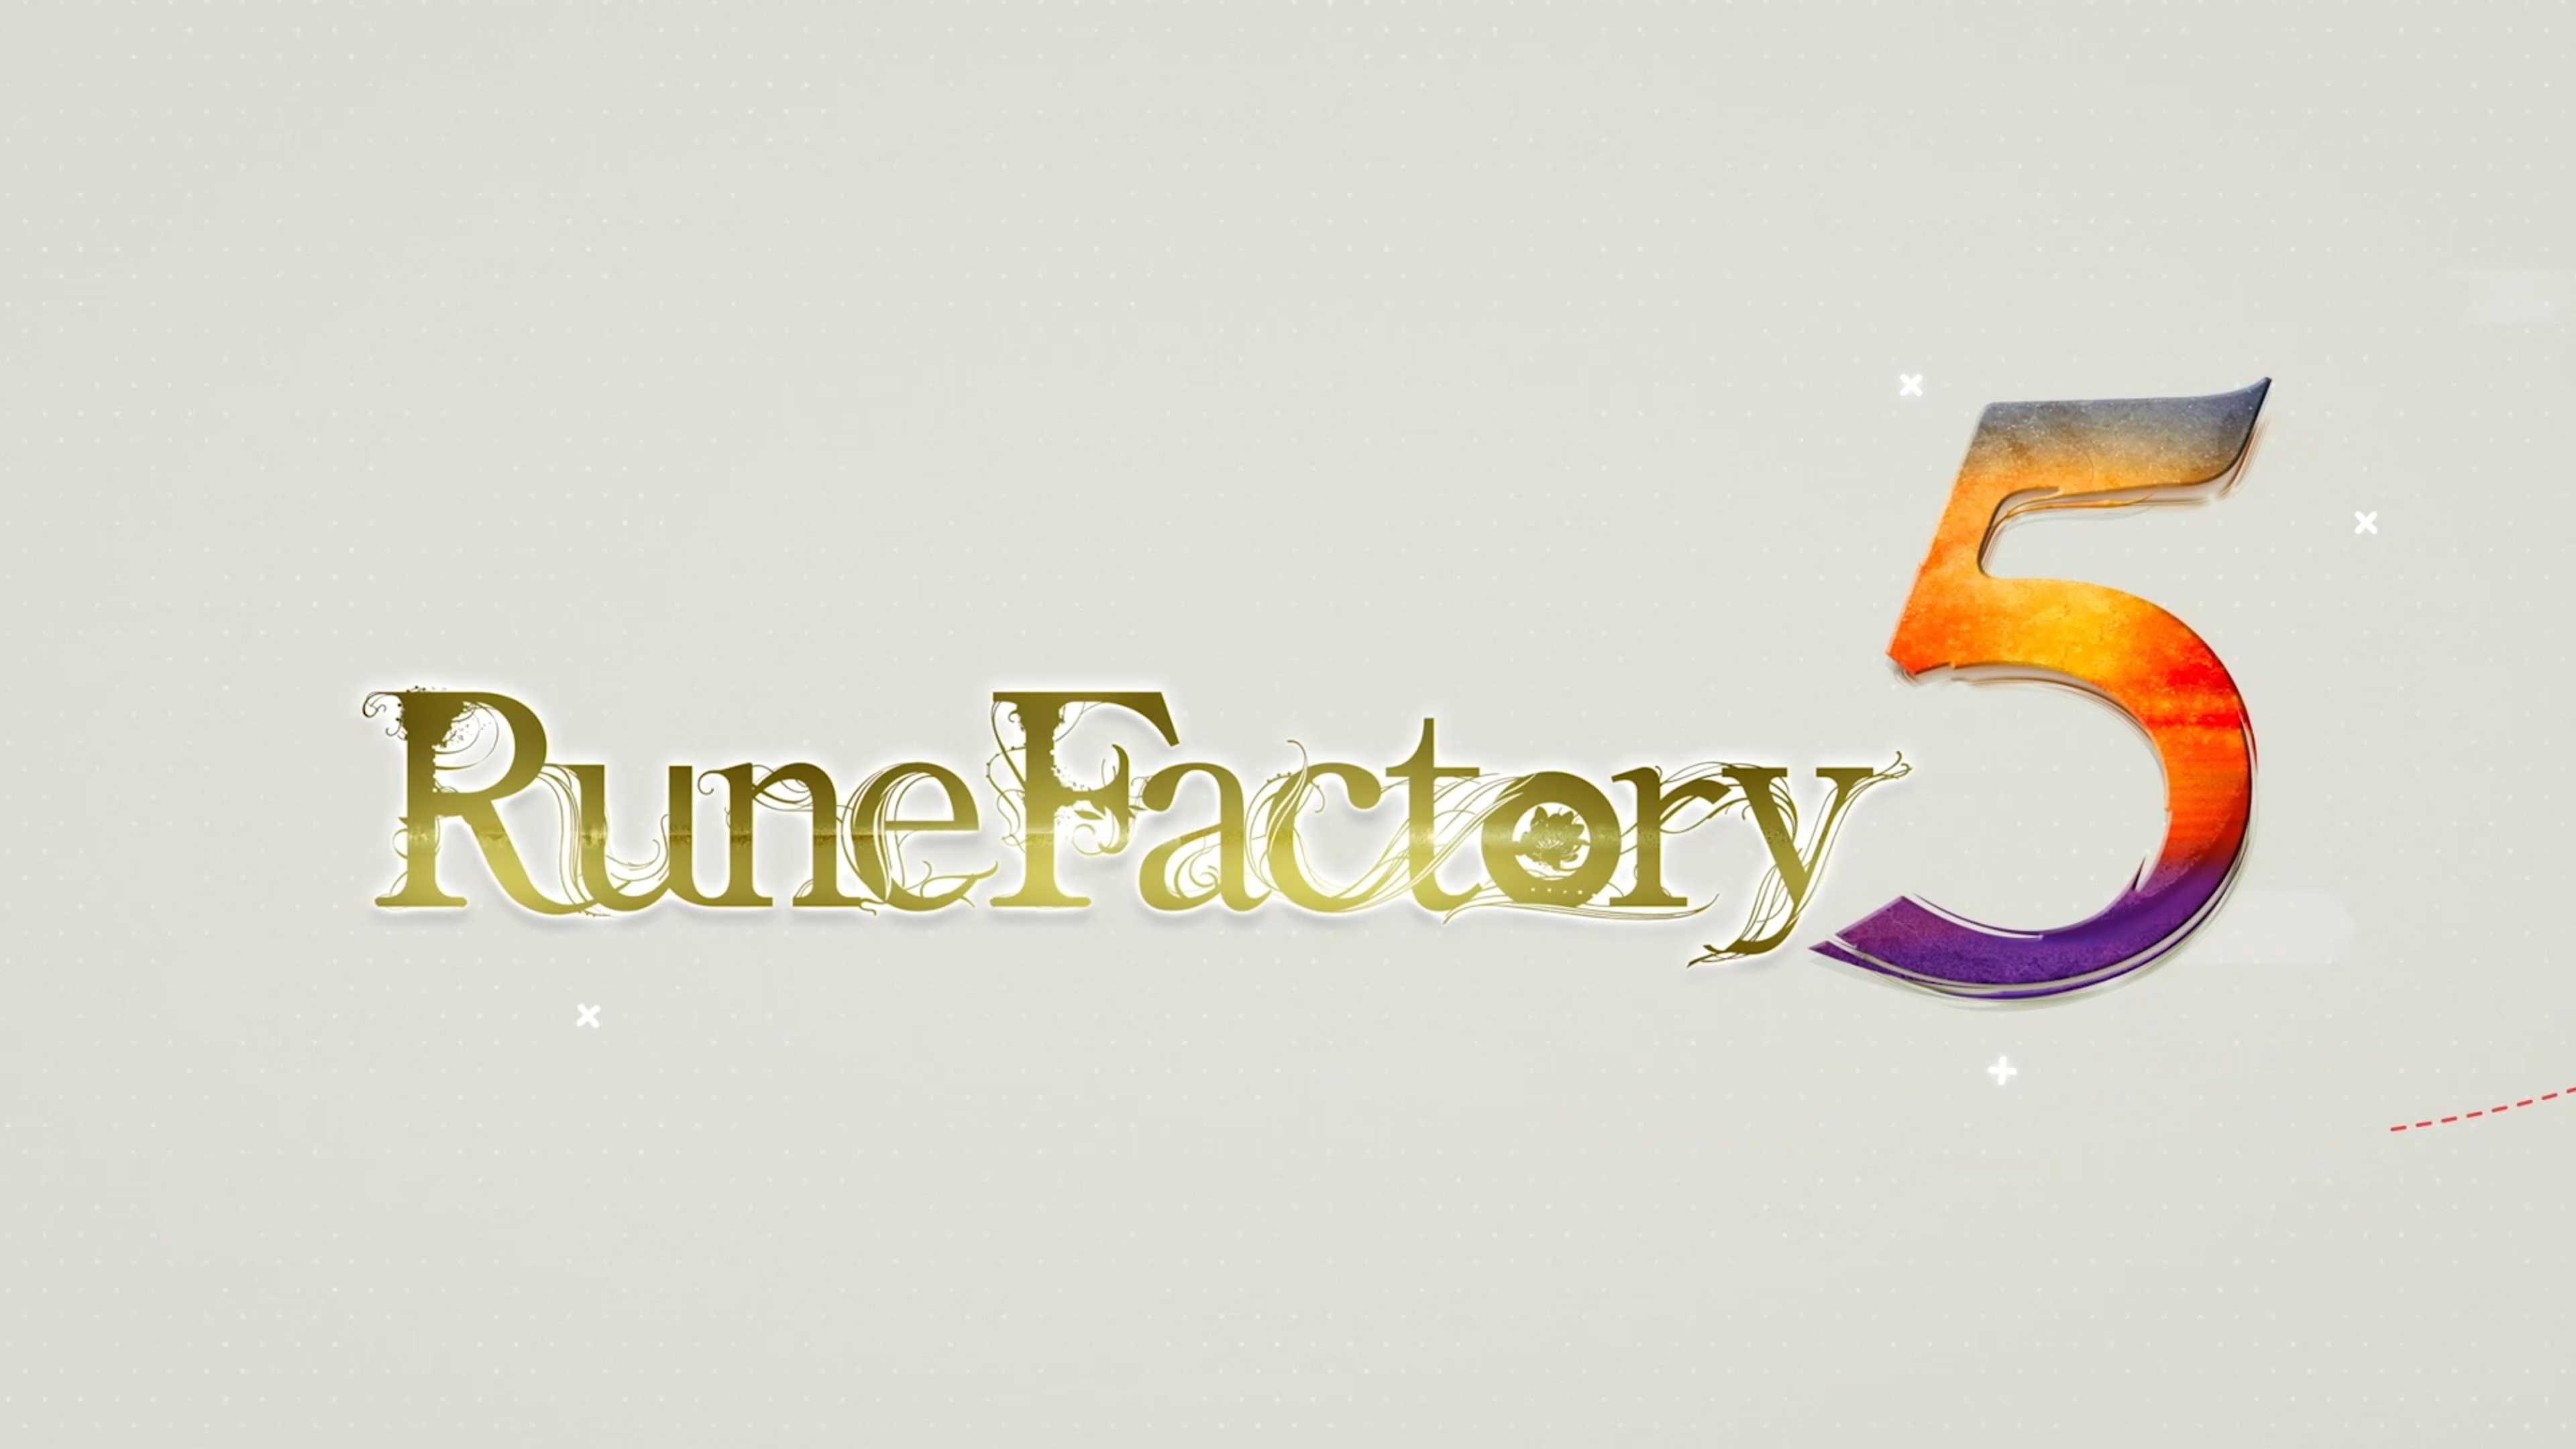 Next Rune Factory 4 Special live stream with Rune Factory 5 update